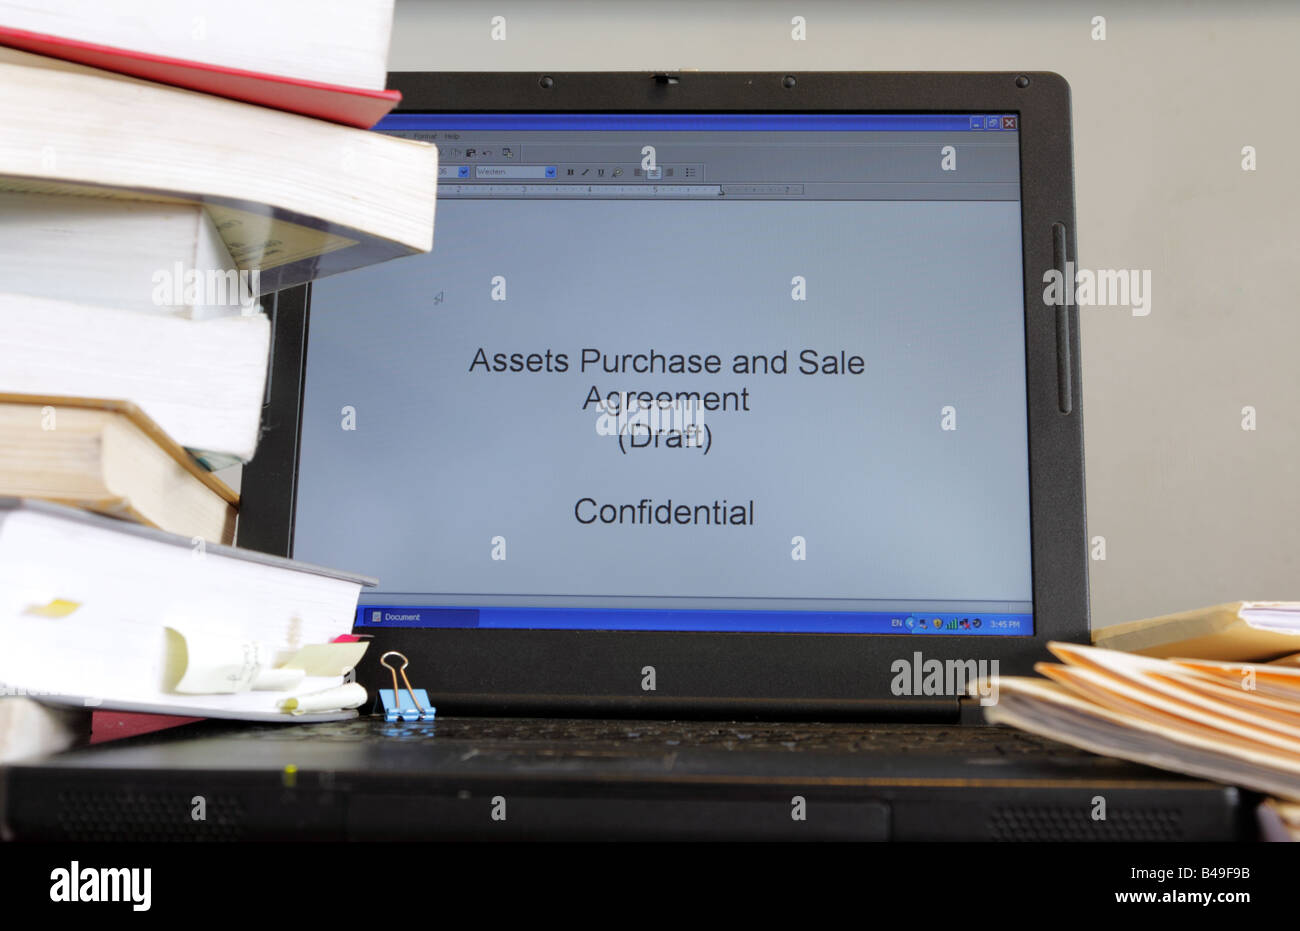 Assets Purchase And Sale Agreement As Work In Progress On Laptop Of